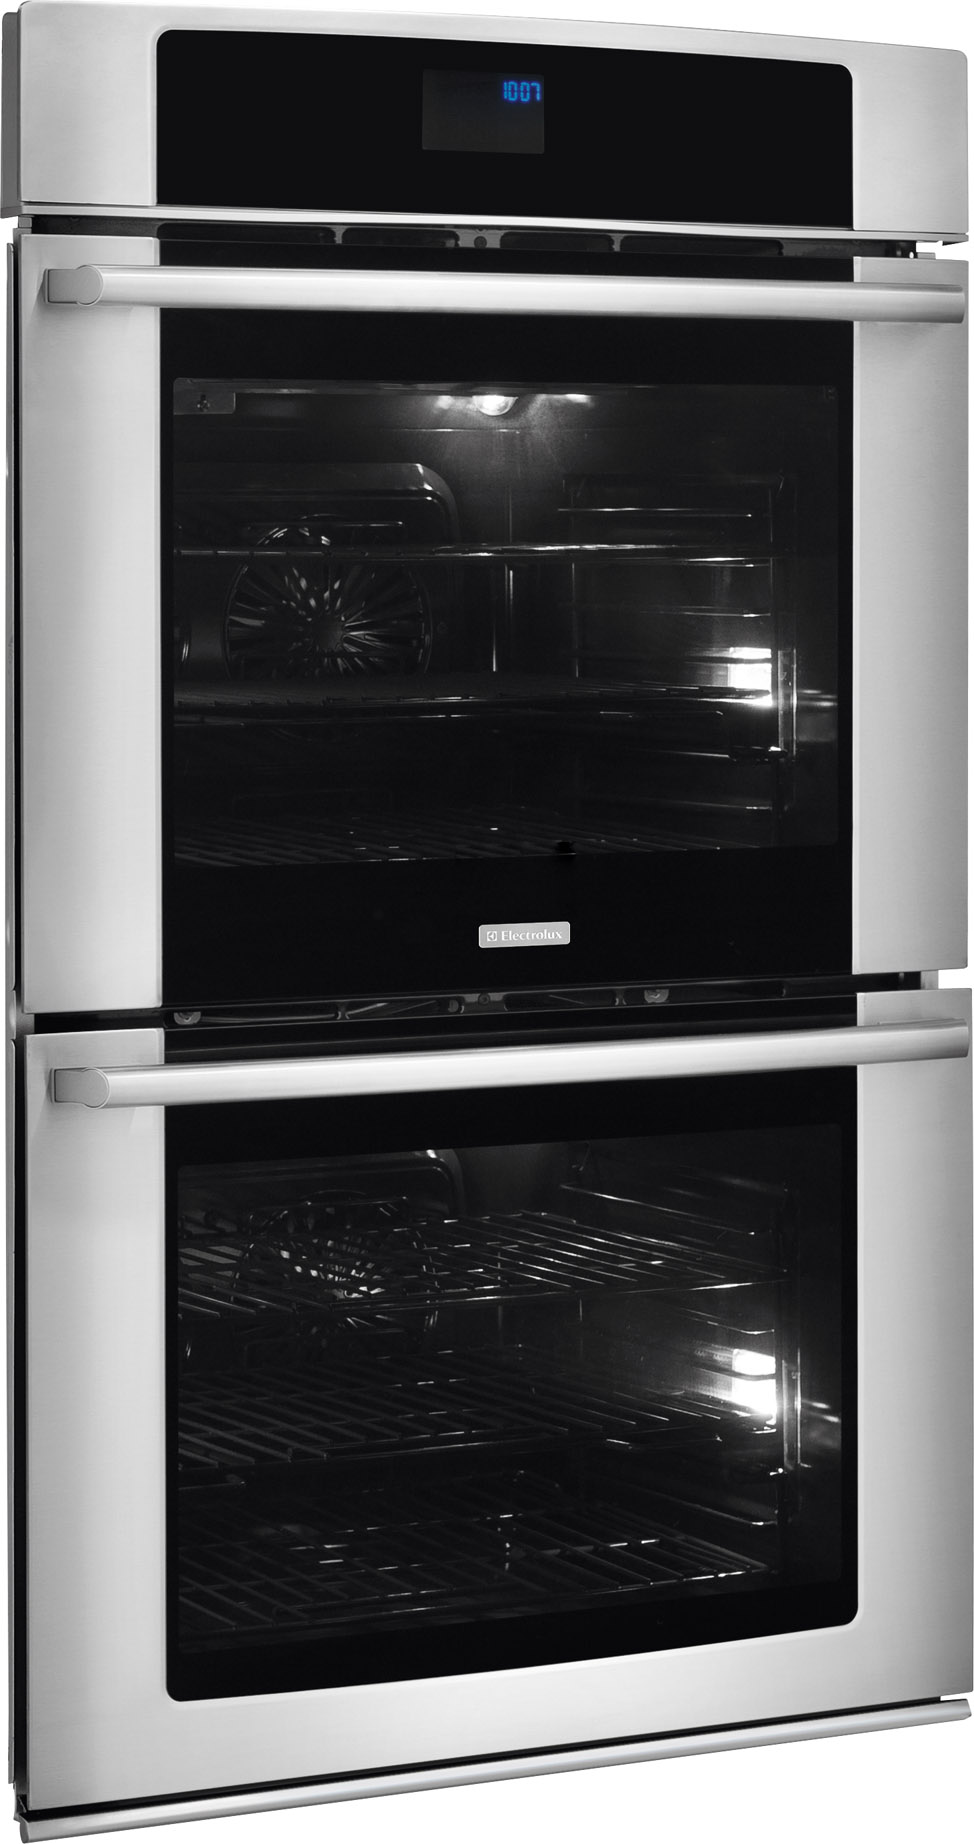 Electrolux 30 Built In Electric Double Oven Stainless Steel